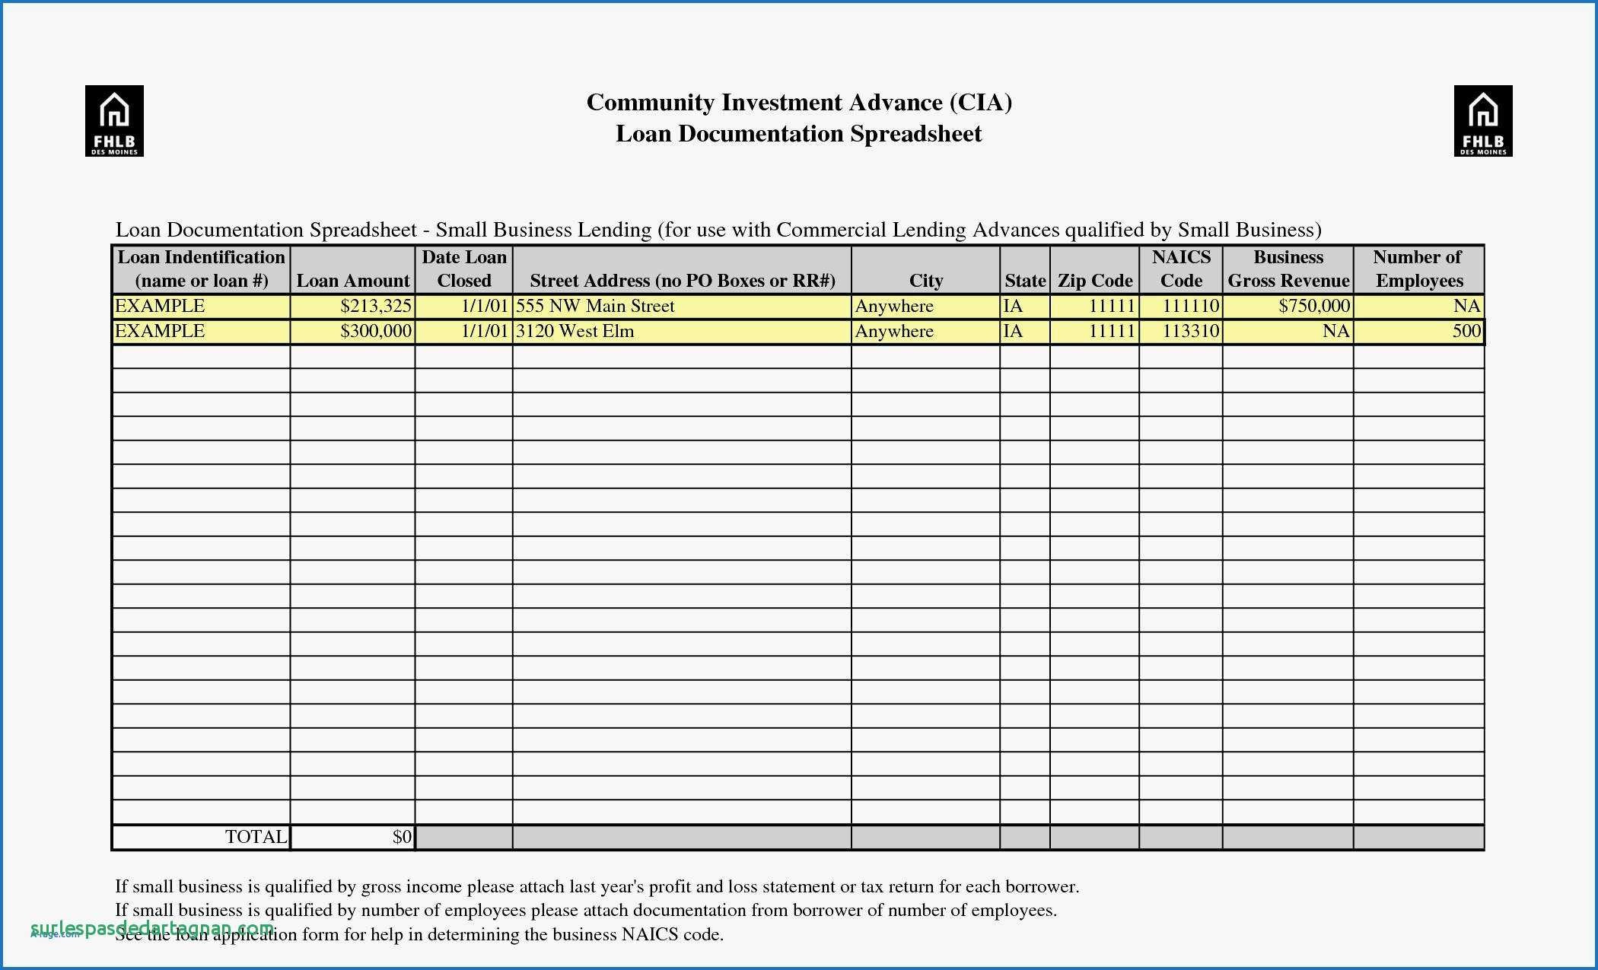 Example Of Small Business Taxeadsheet Template Inspirational Expense And Business Tax Spreadsheet Templates